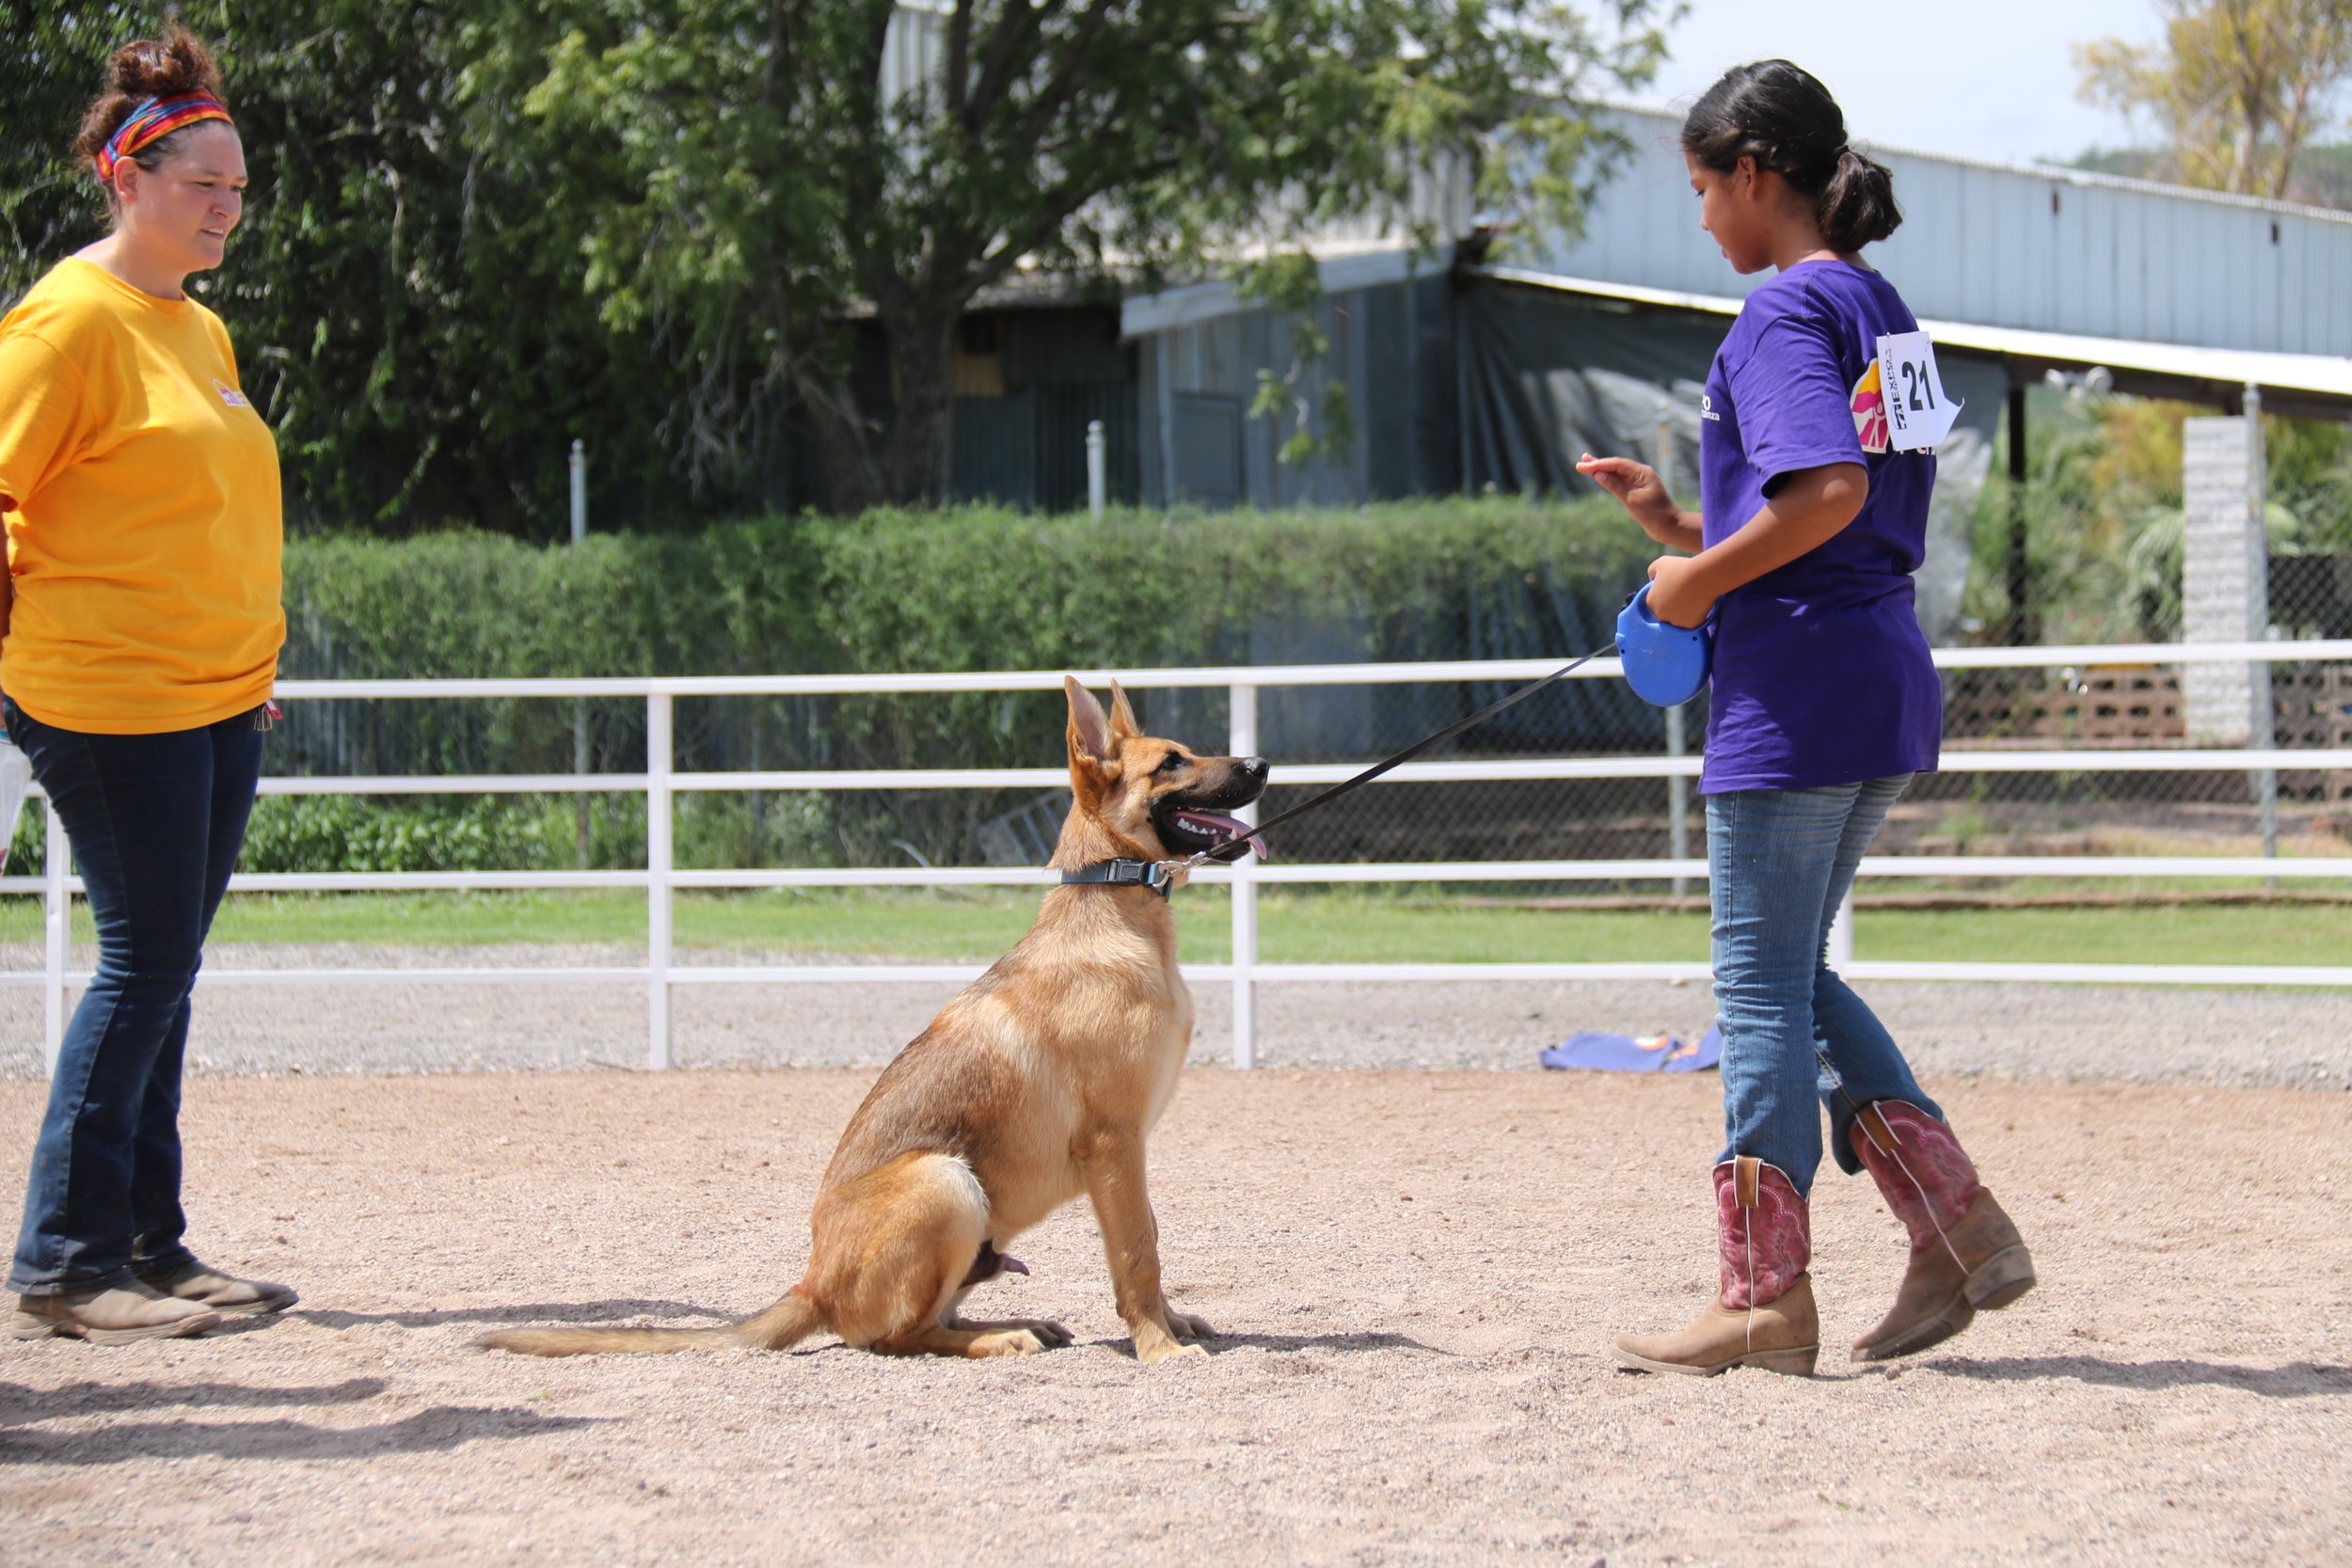 The Dog project was re-designed this year to focus more on dog obedience for Intermediate and Advanced participants.